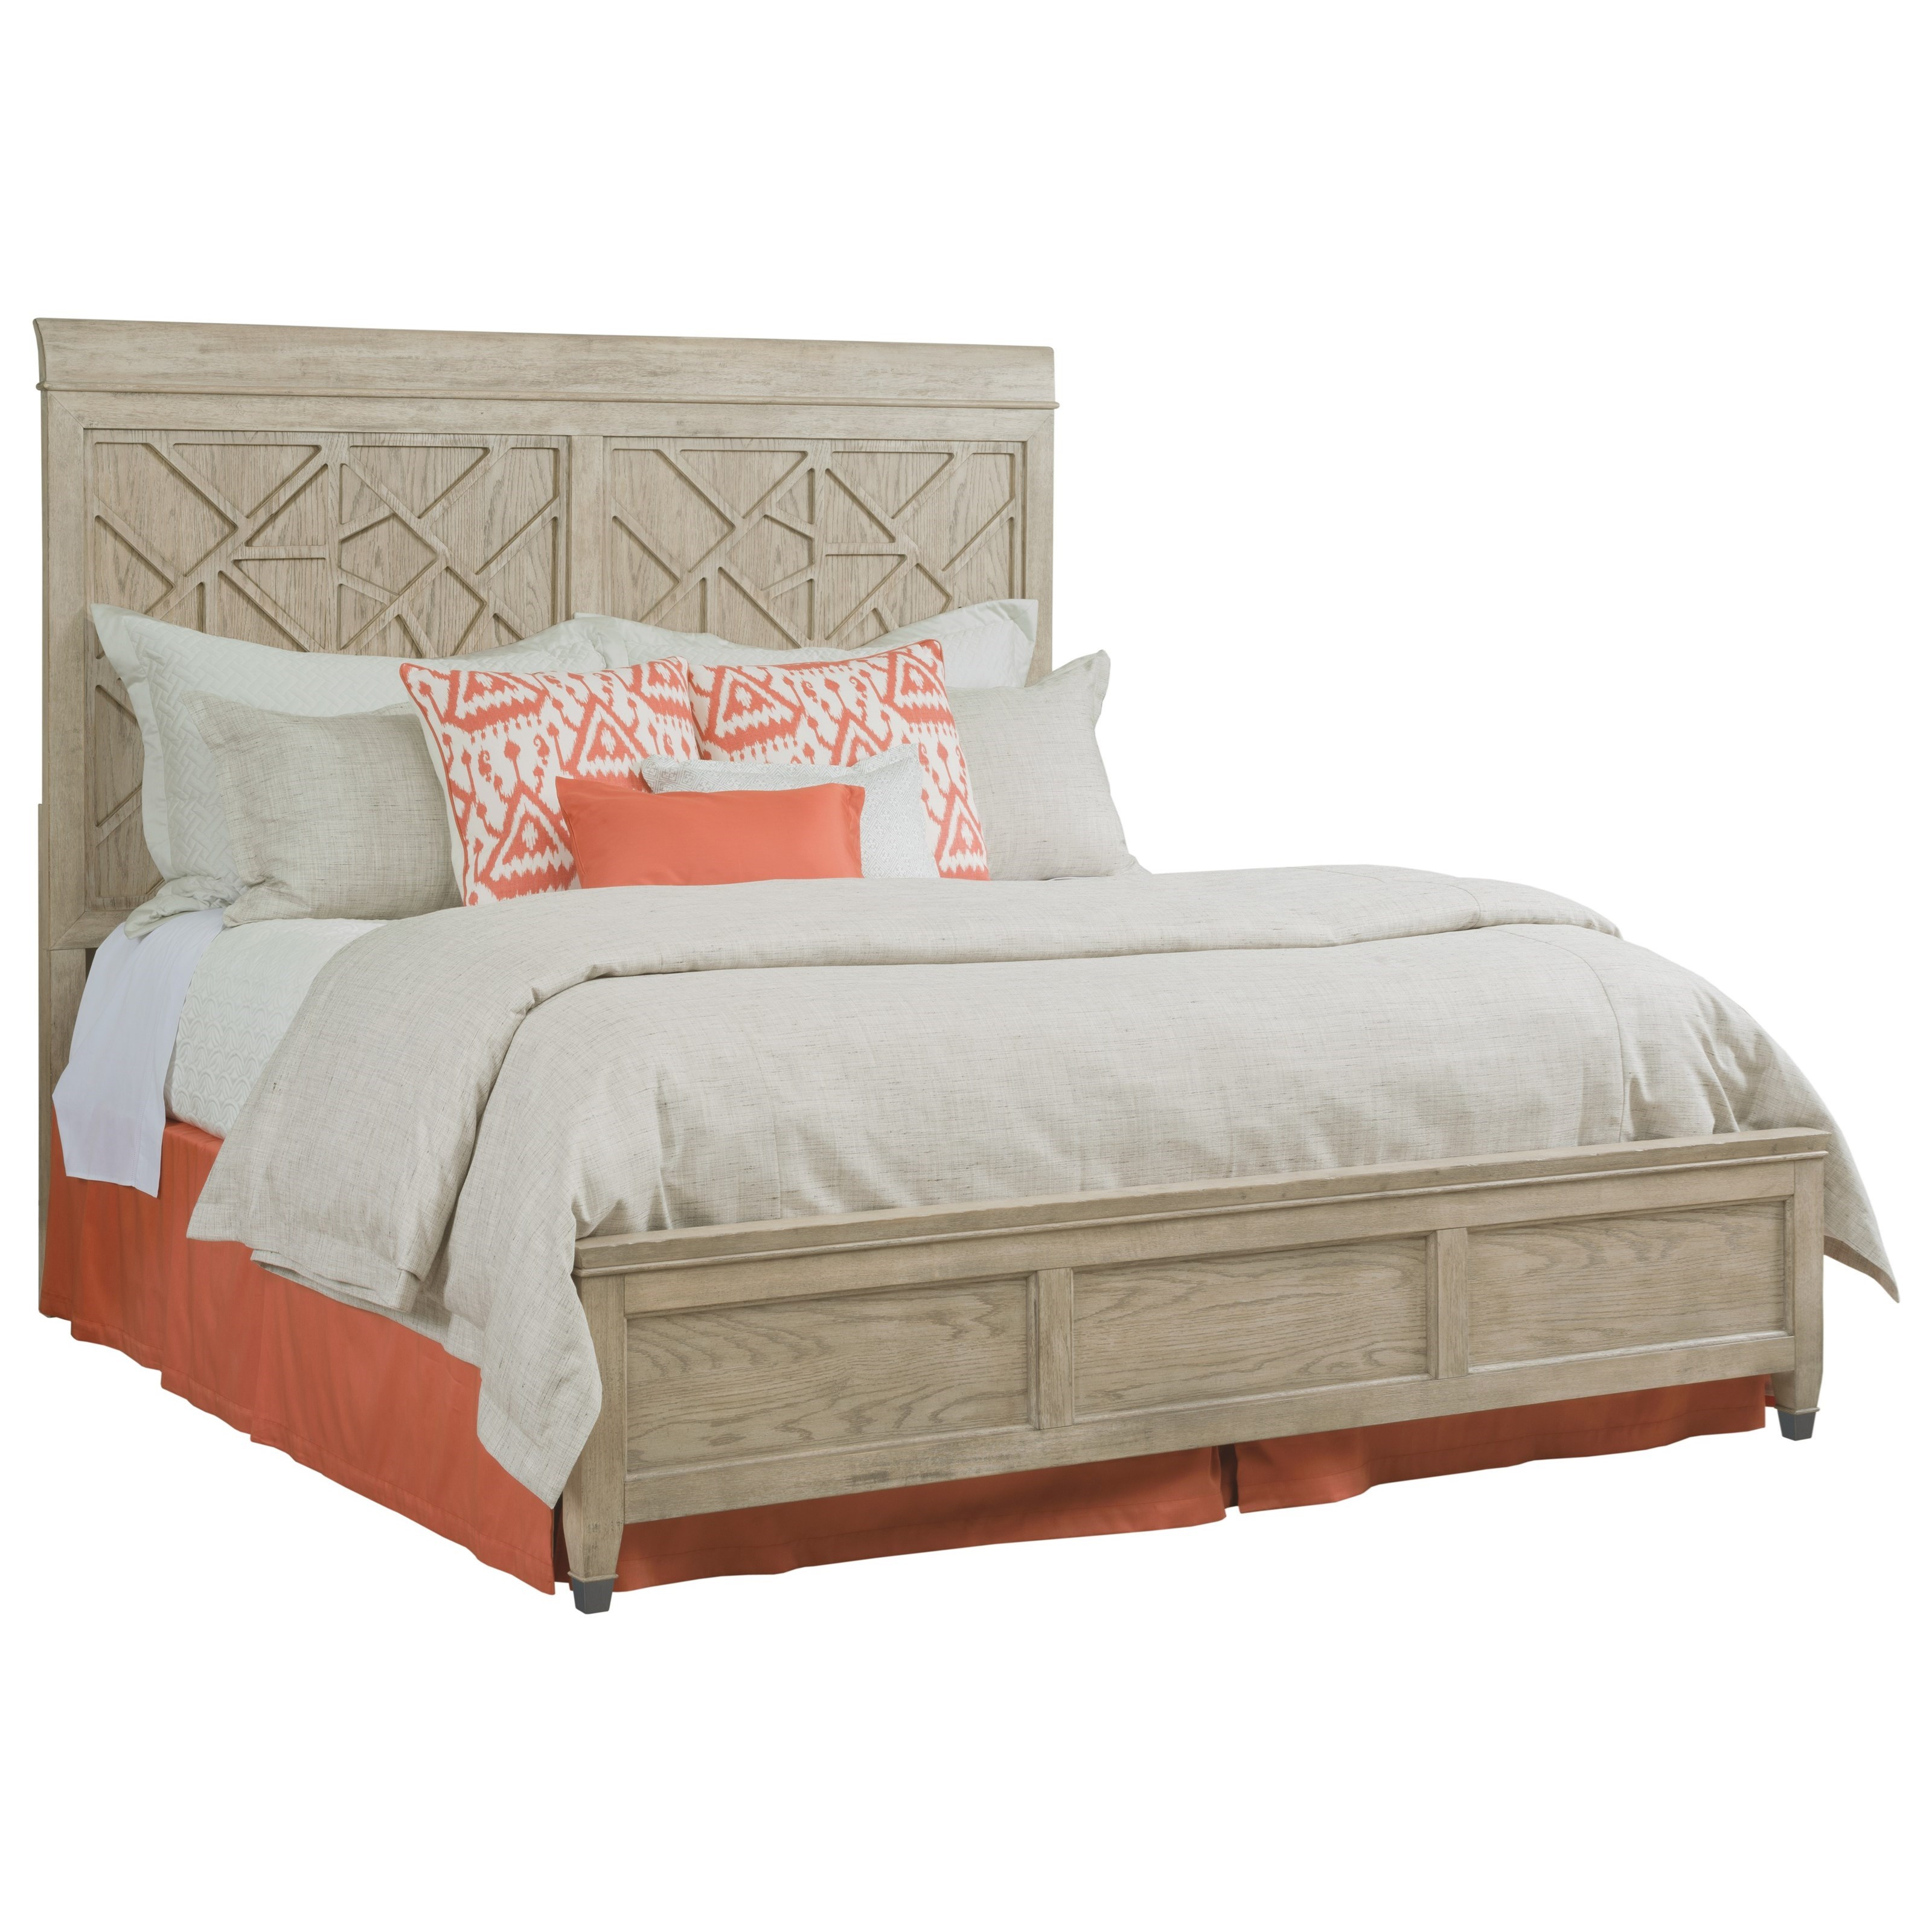 Vista King Altamonte Bed by American Drew at Johnny Janosik